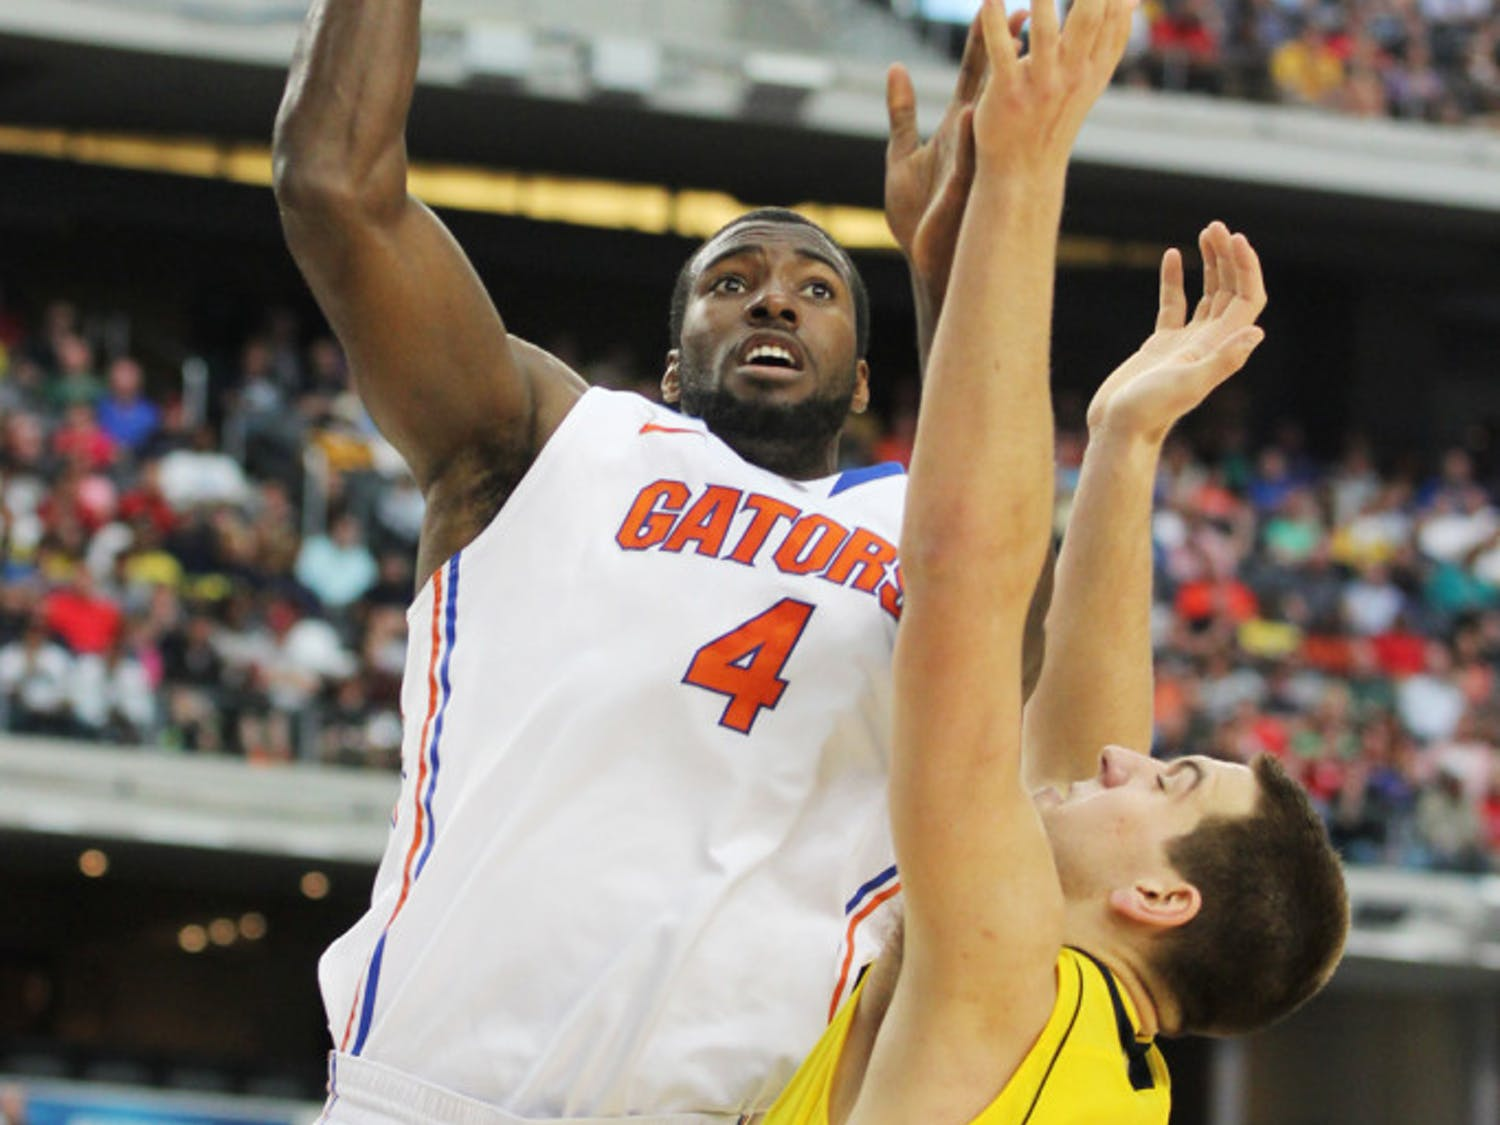 Center Patric Young attempts a shot during Florida's 79-59 Elite Eight loss to Michigan on March 31 in Arlington, Texas.